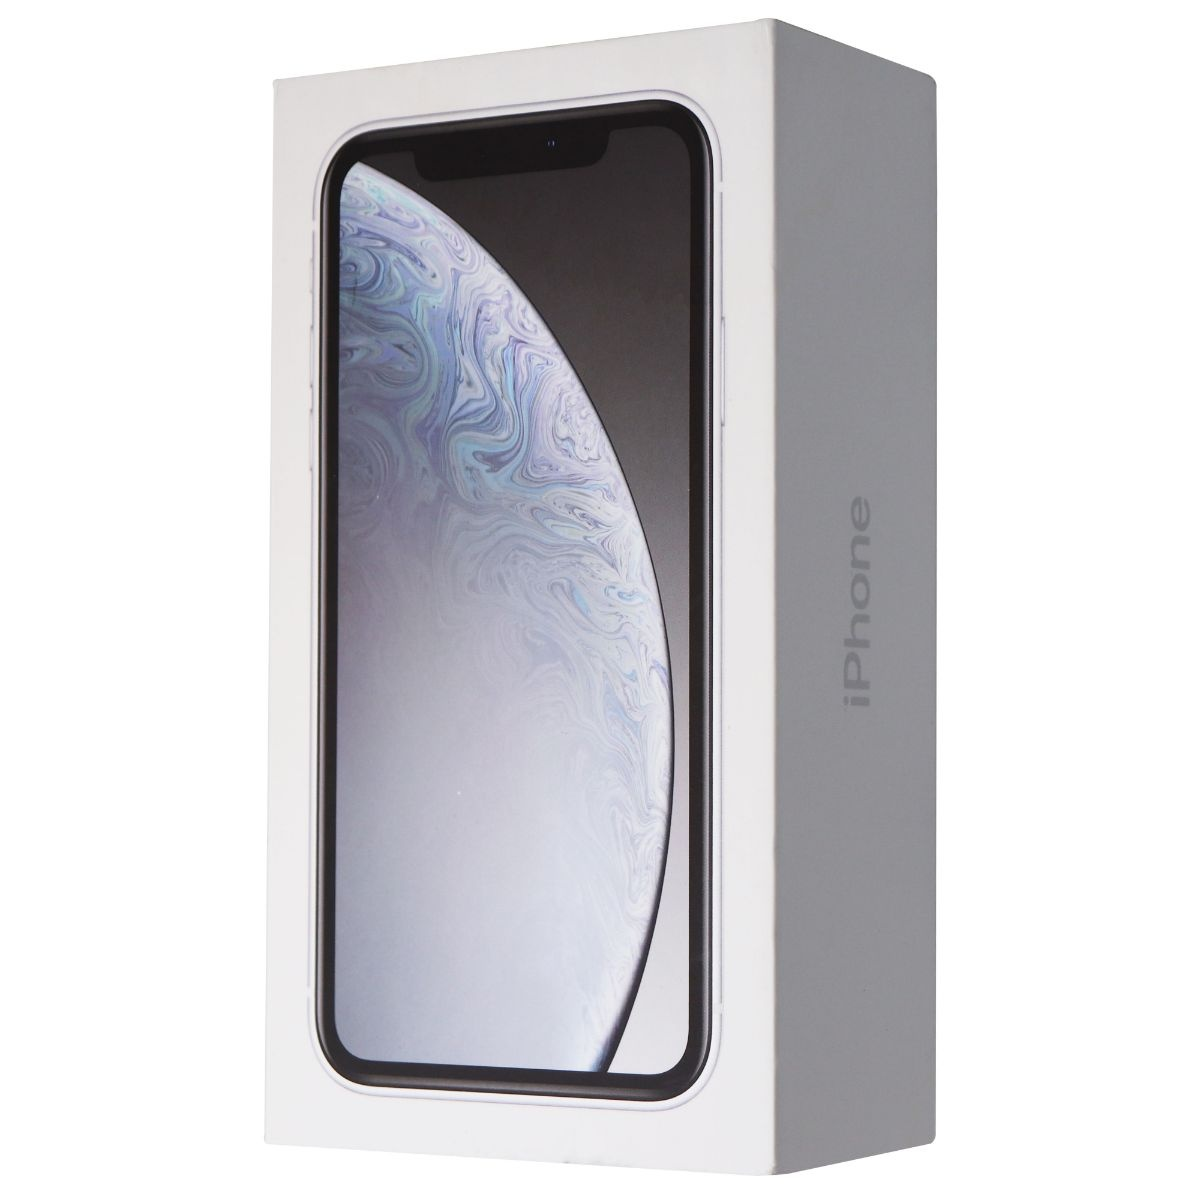 RETAIL BOX - Apple iPhone XR - 256GB / White - NO DEVICE